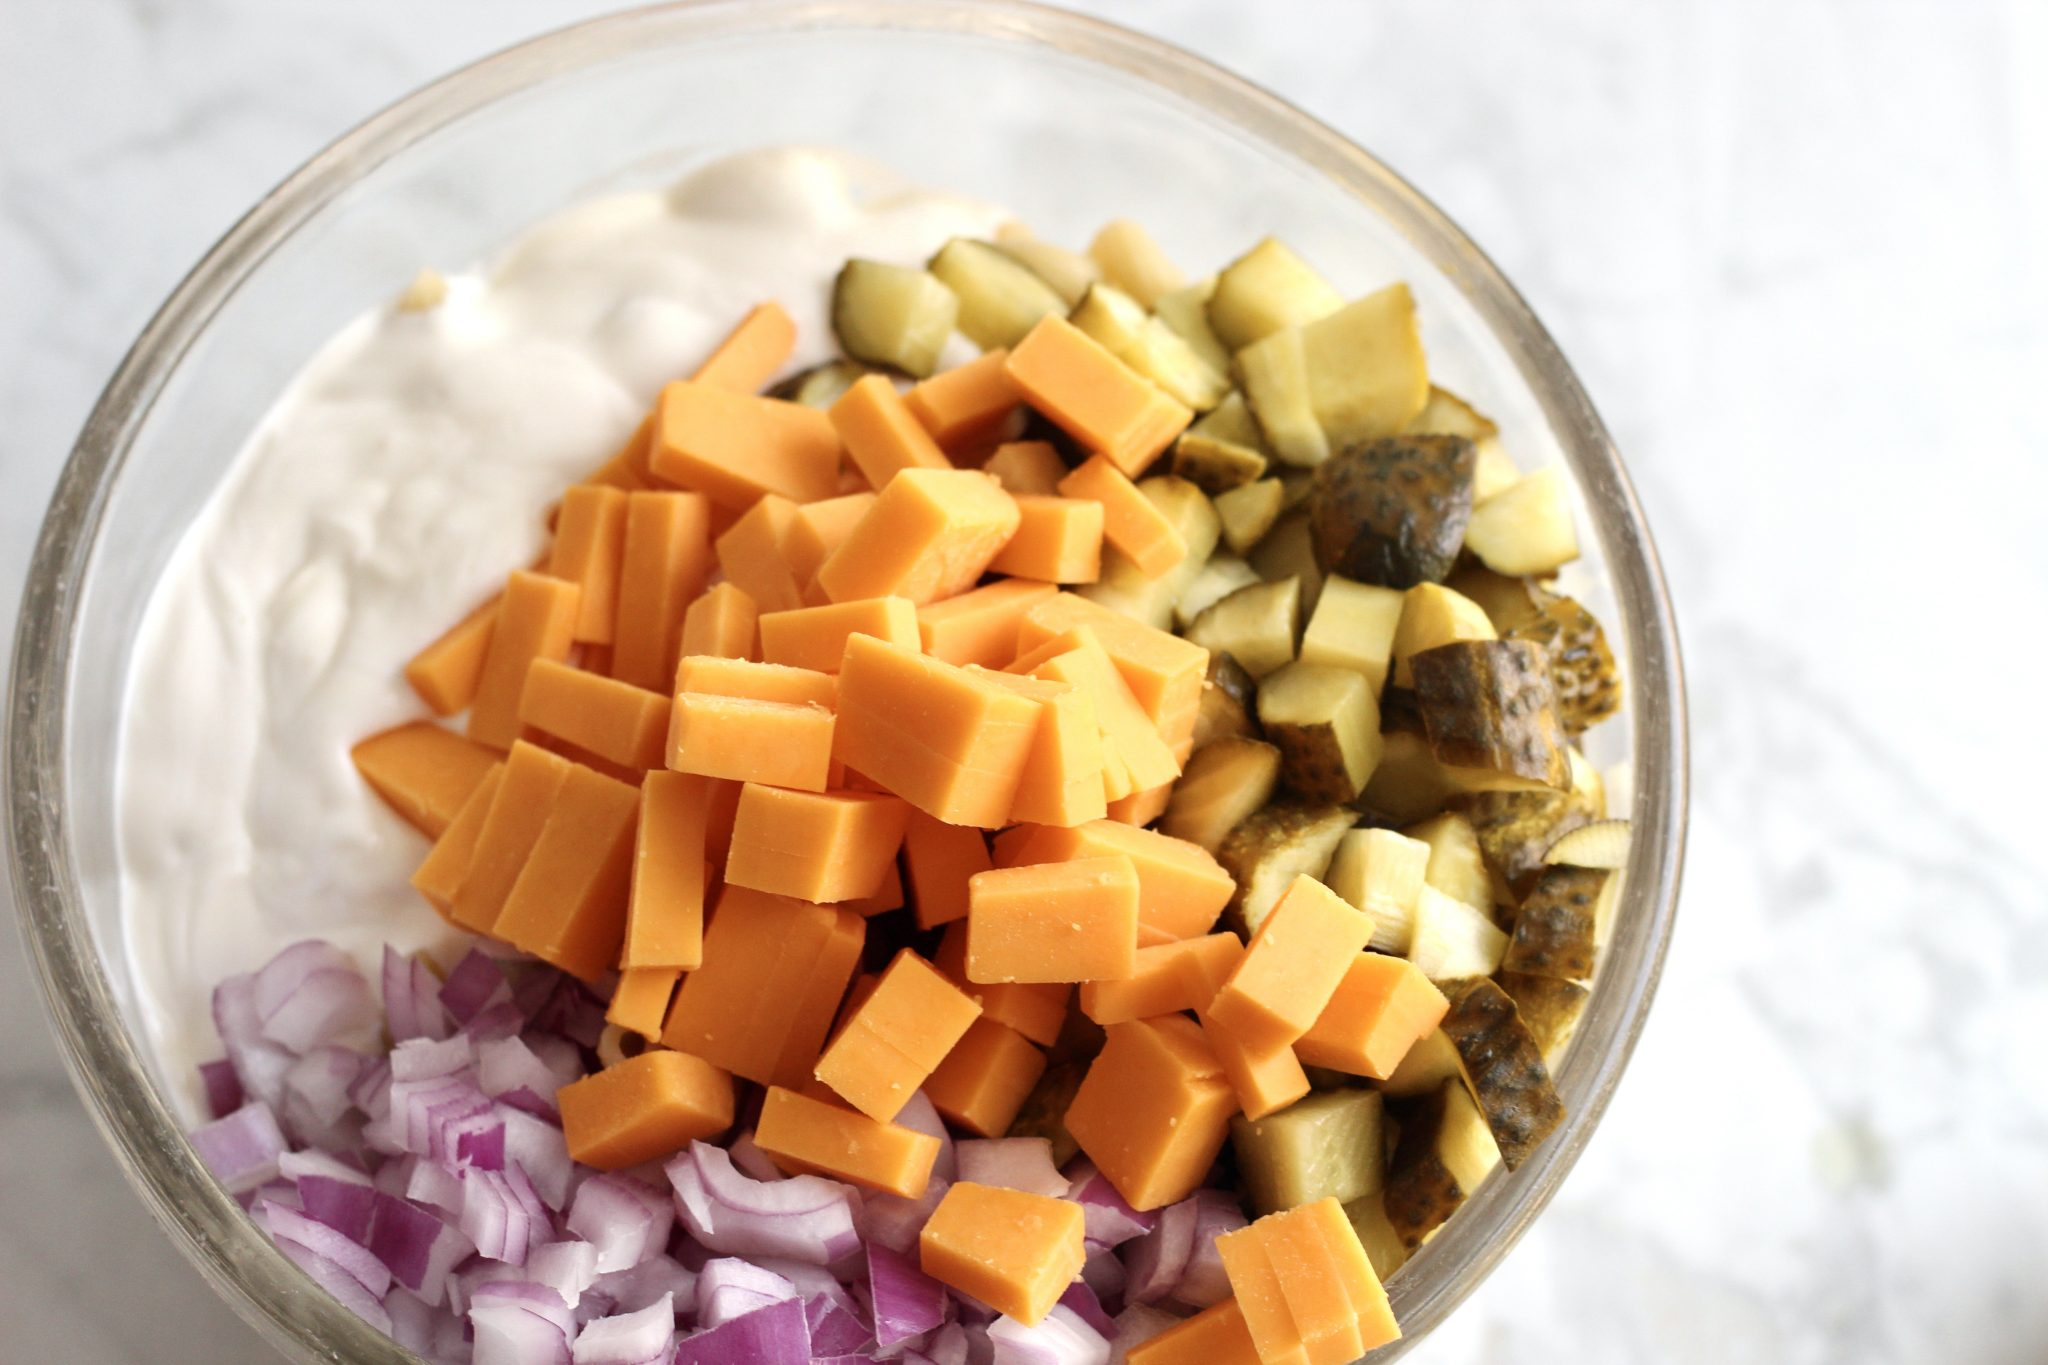 pasta in a bowl with dressing, cheese chunks, pickle chuncks and onions prior to mixing.